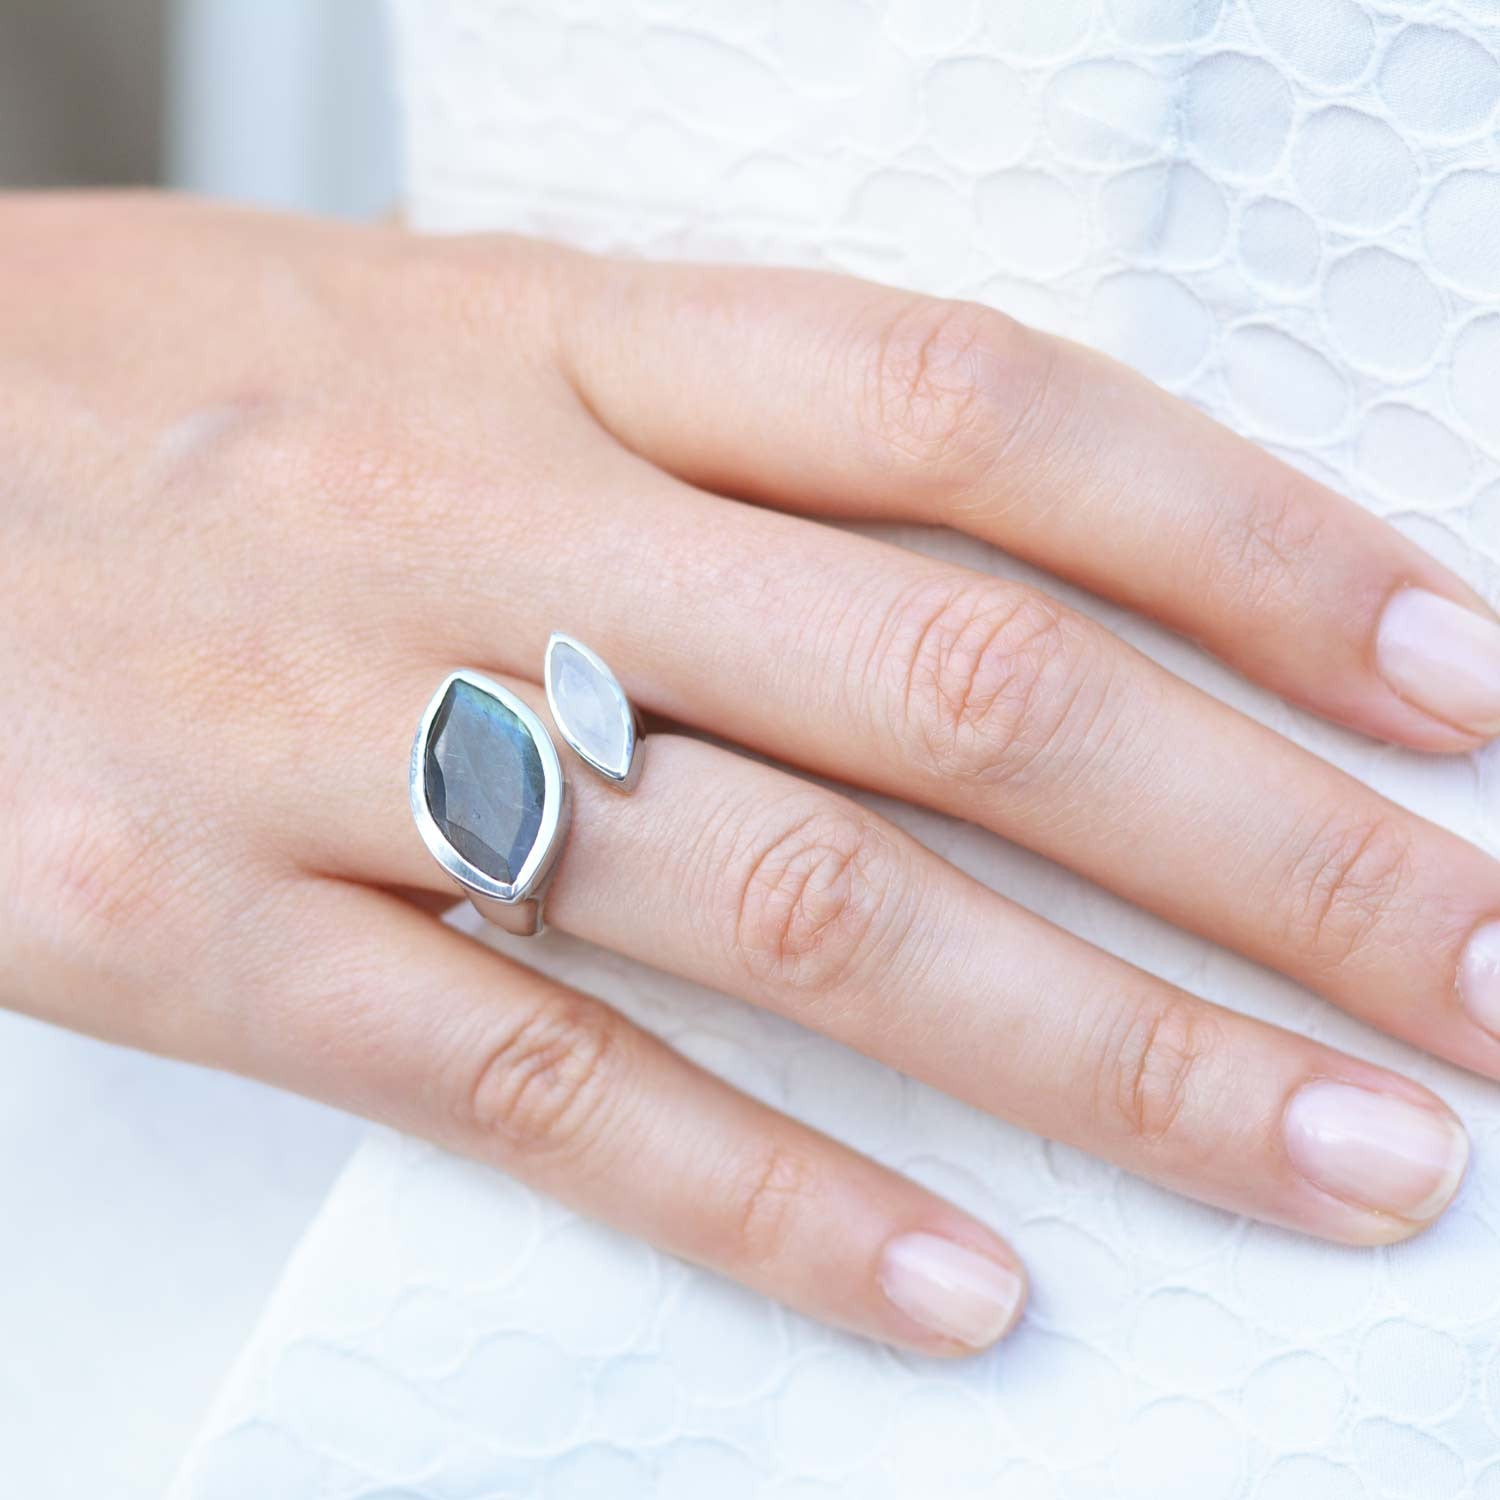 Silver Cocktail Ring with Labradorite and Rainbow Moonstone, unique British design